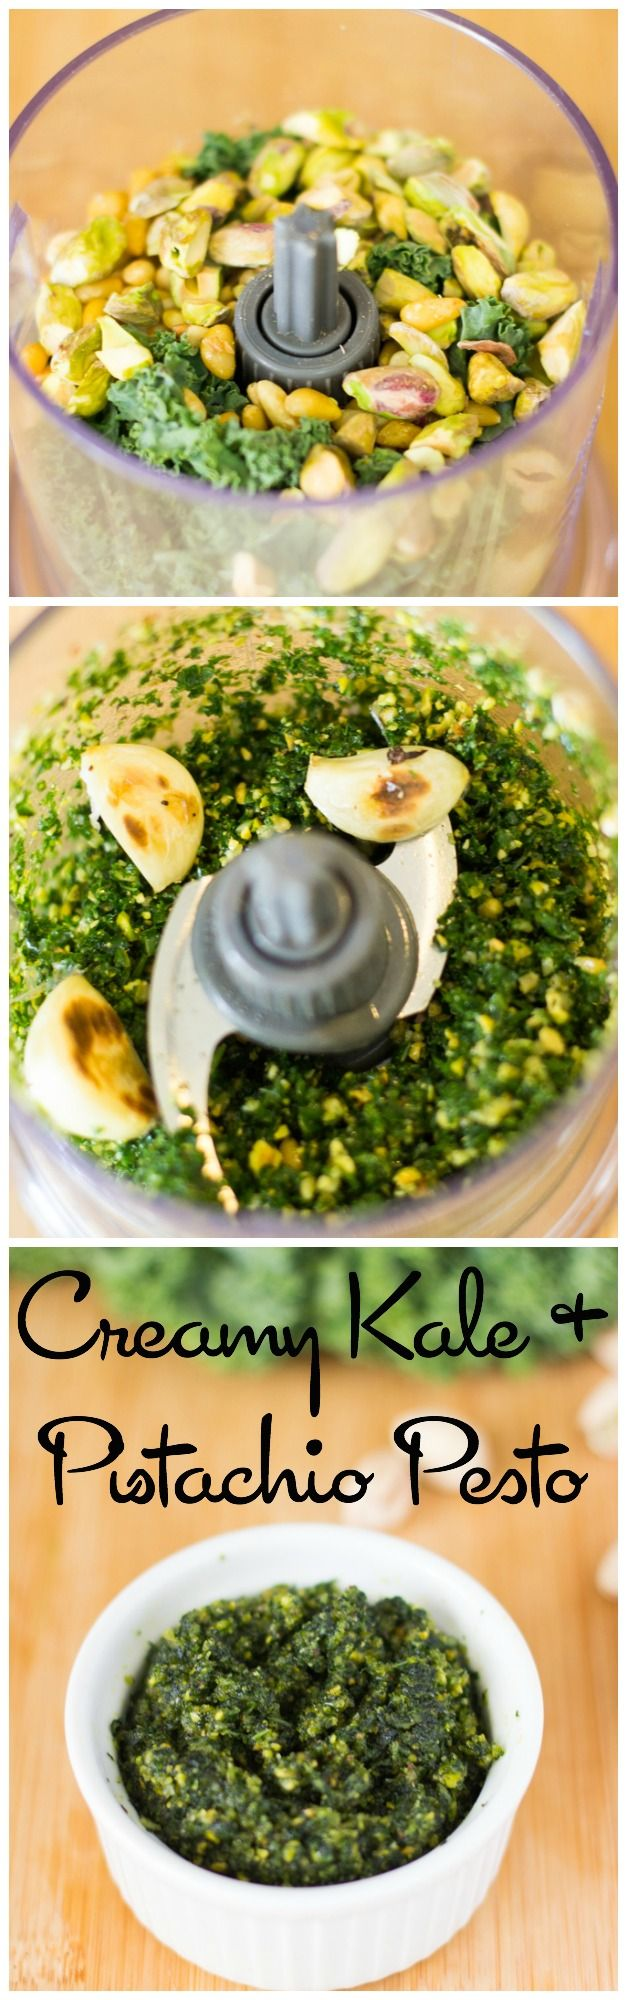 Kale and Pistachio Pesto is the best pesto I have ever had! It's so creamy and flavourful, and perfect for a dip, your pasta or on anything!